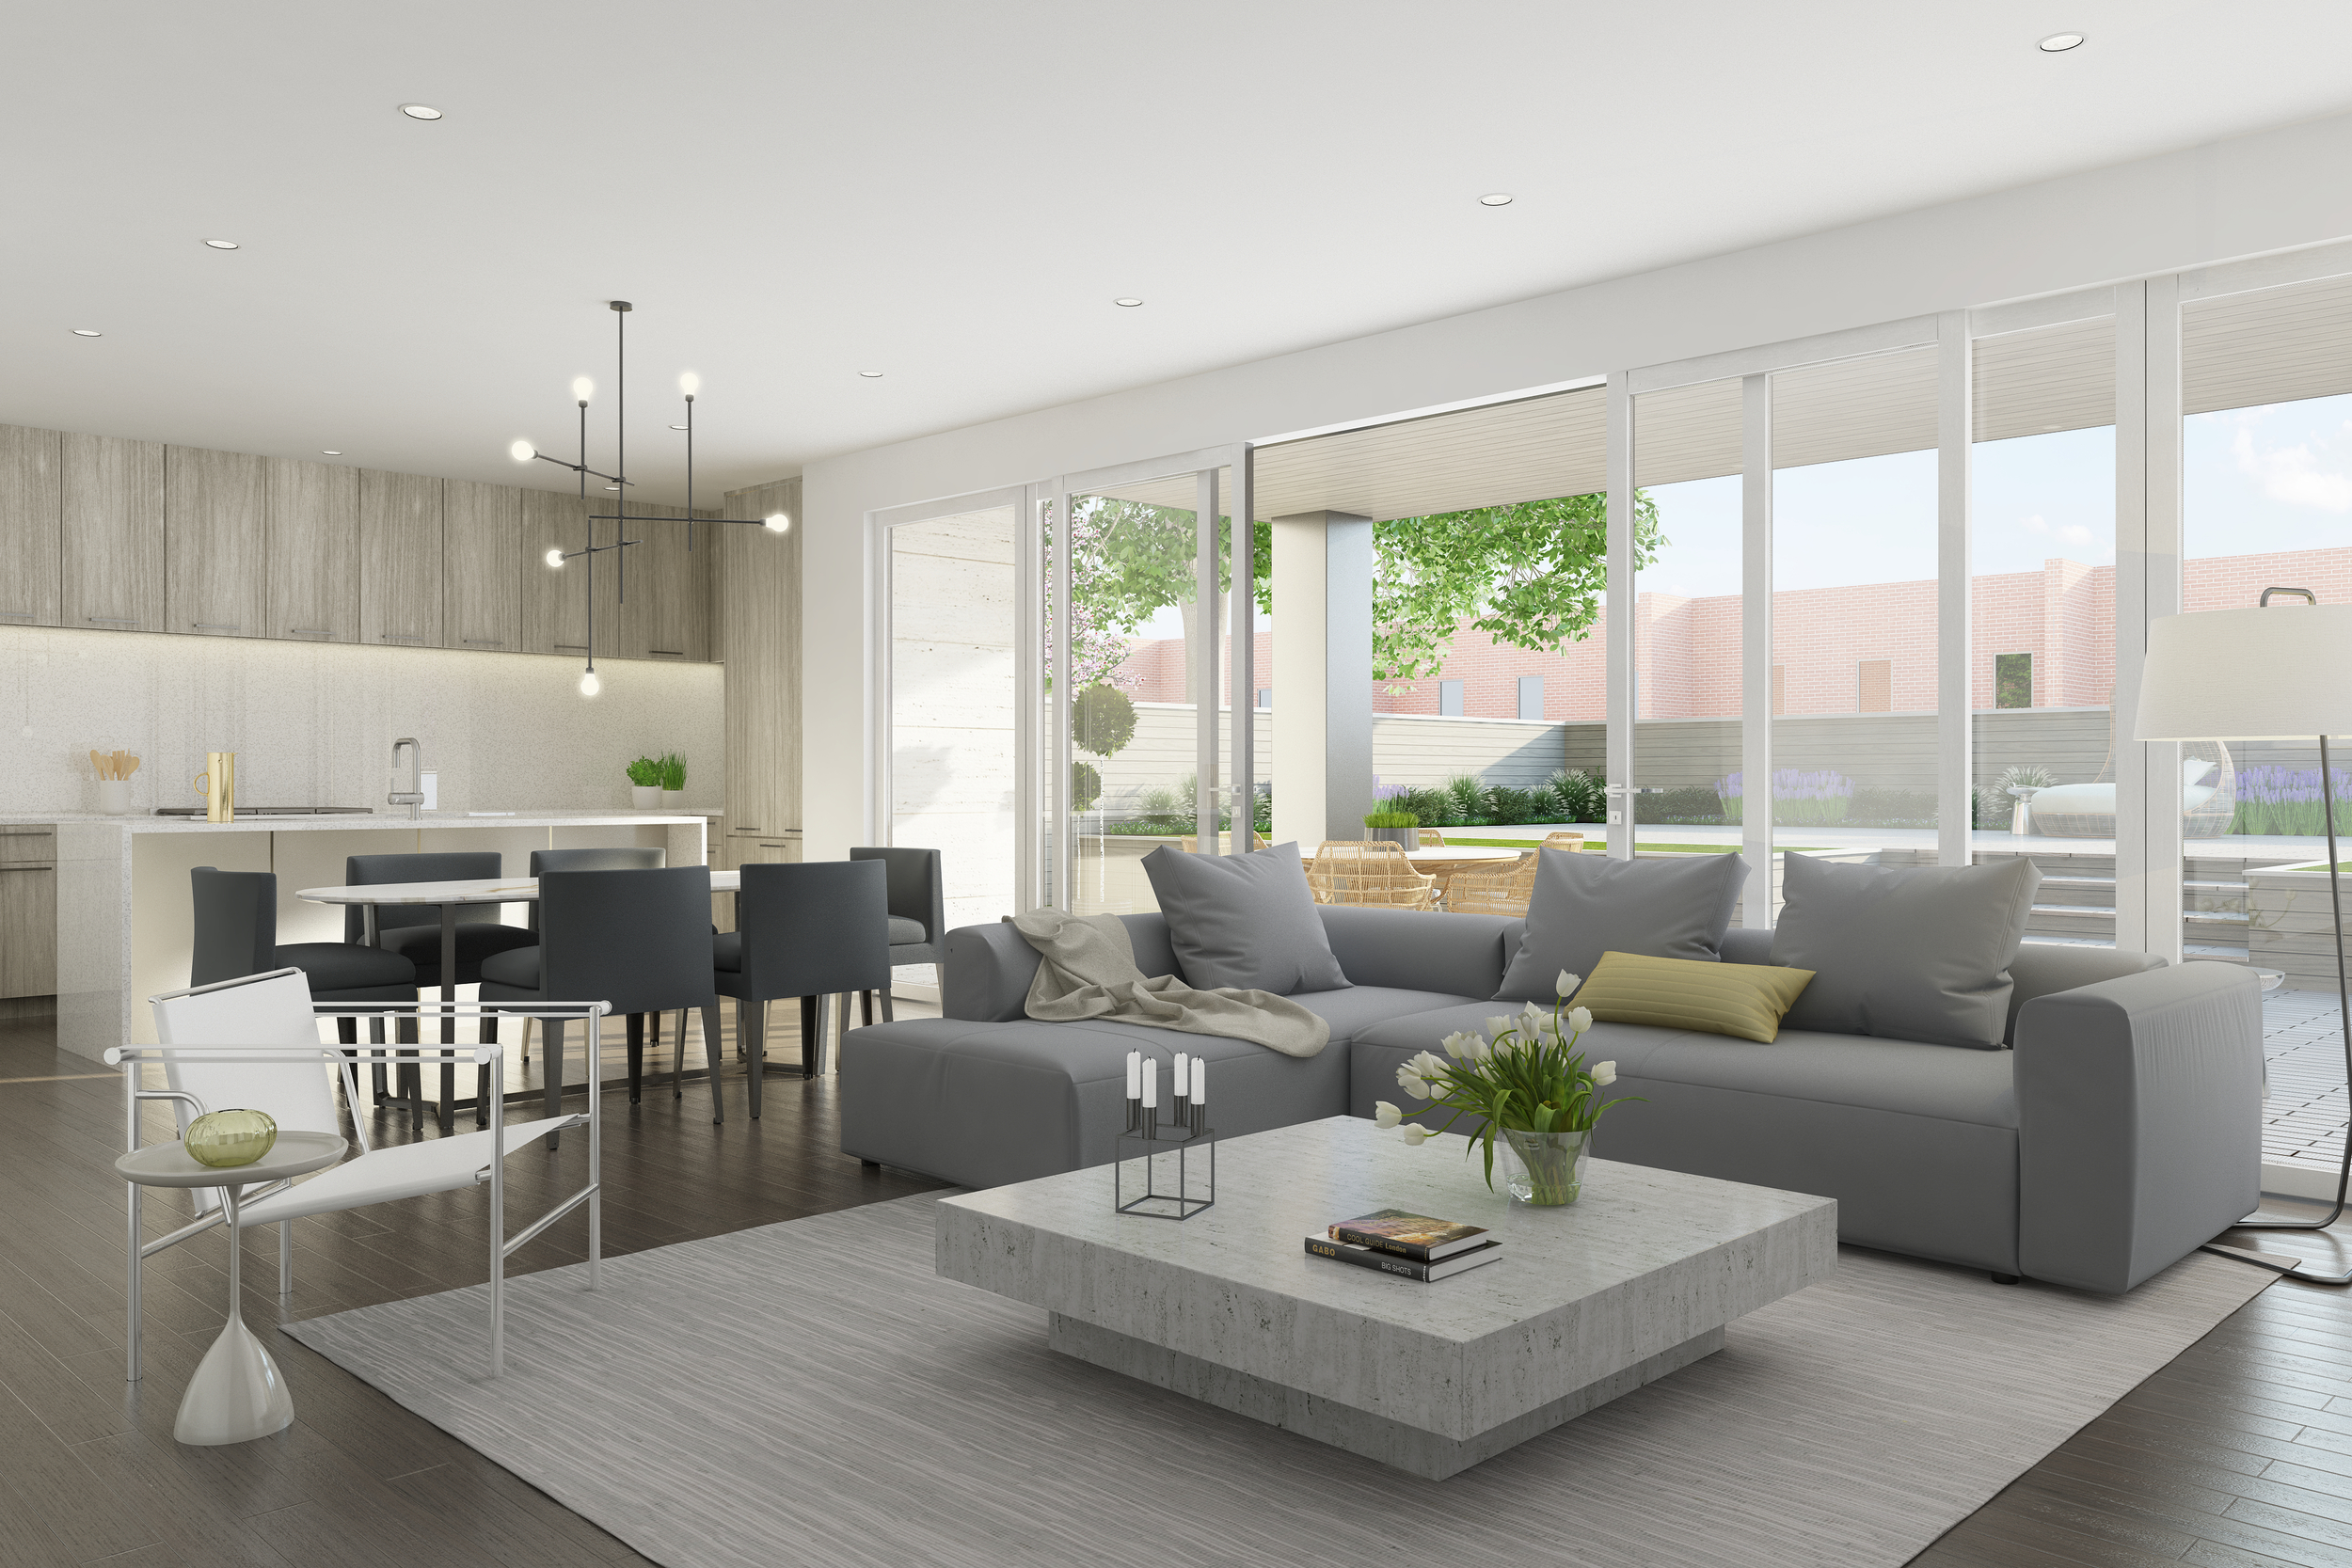 Rendering - Unit 104 - Interior - 1615 Burling.jpg